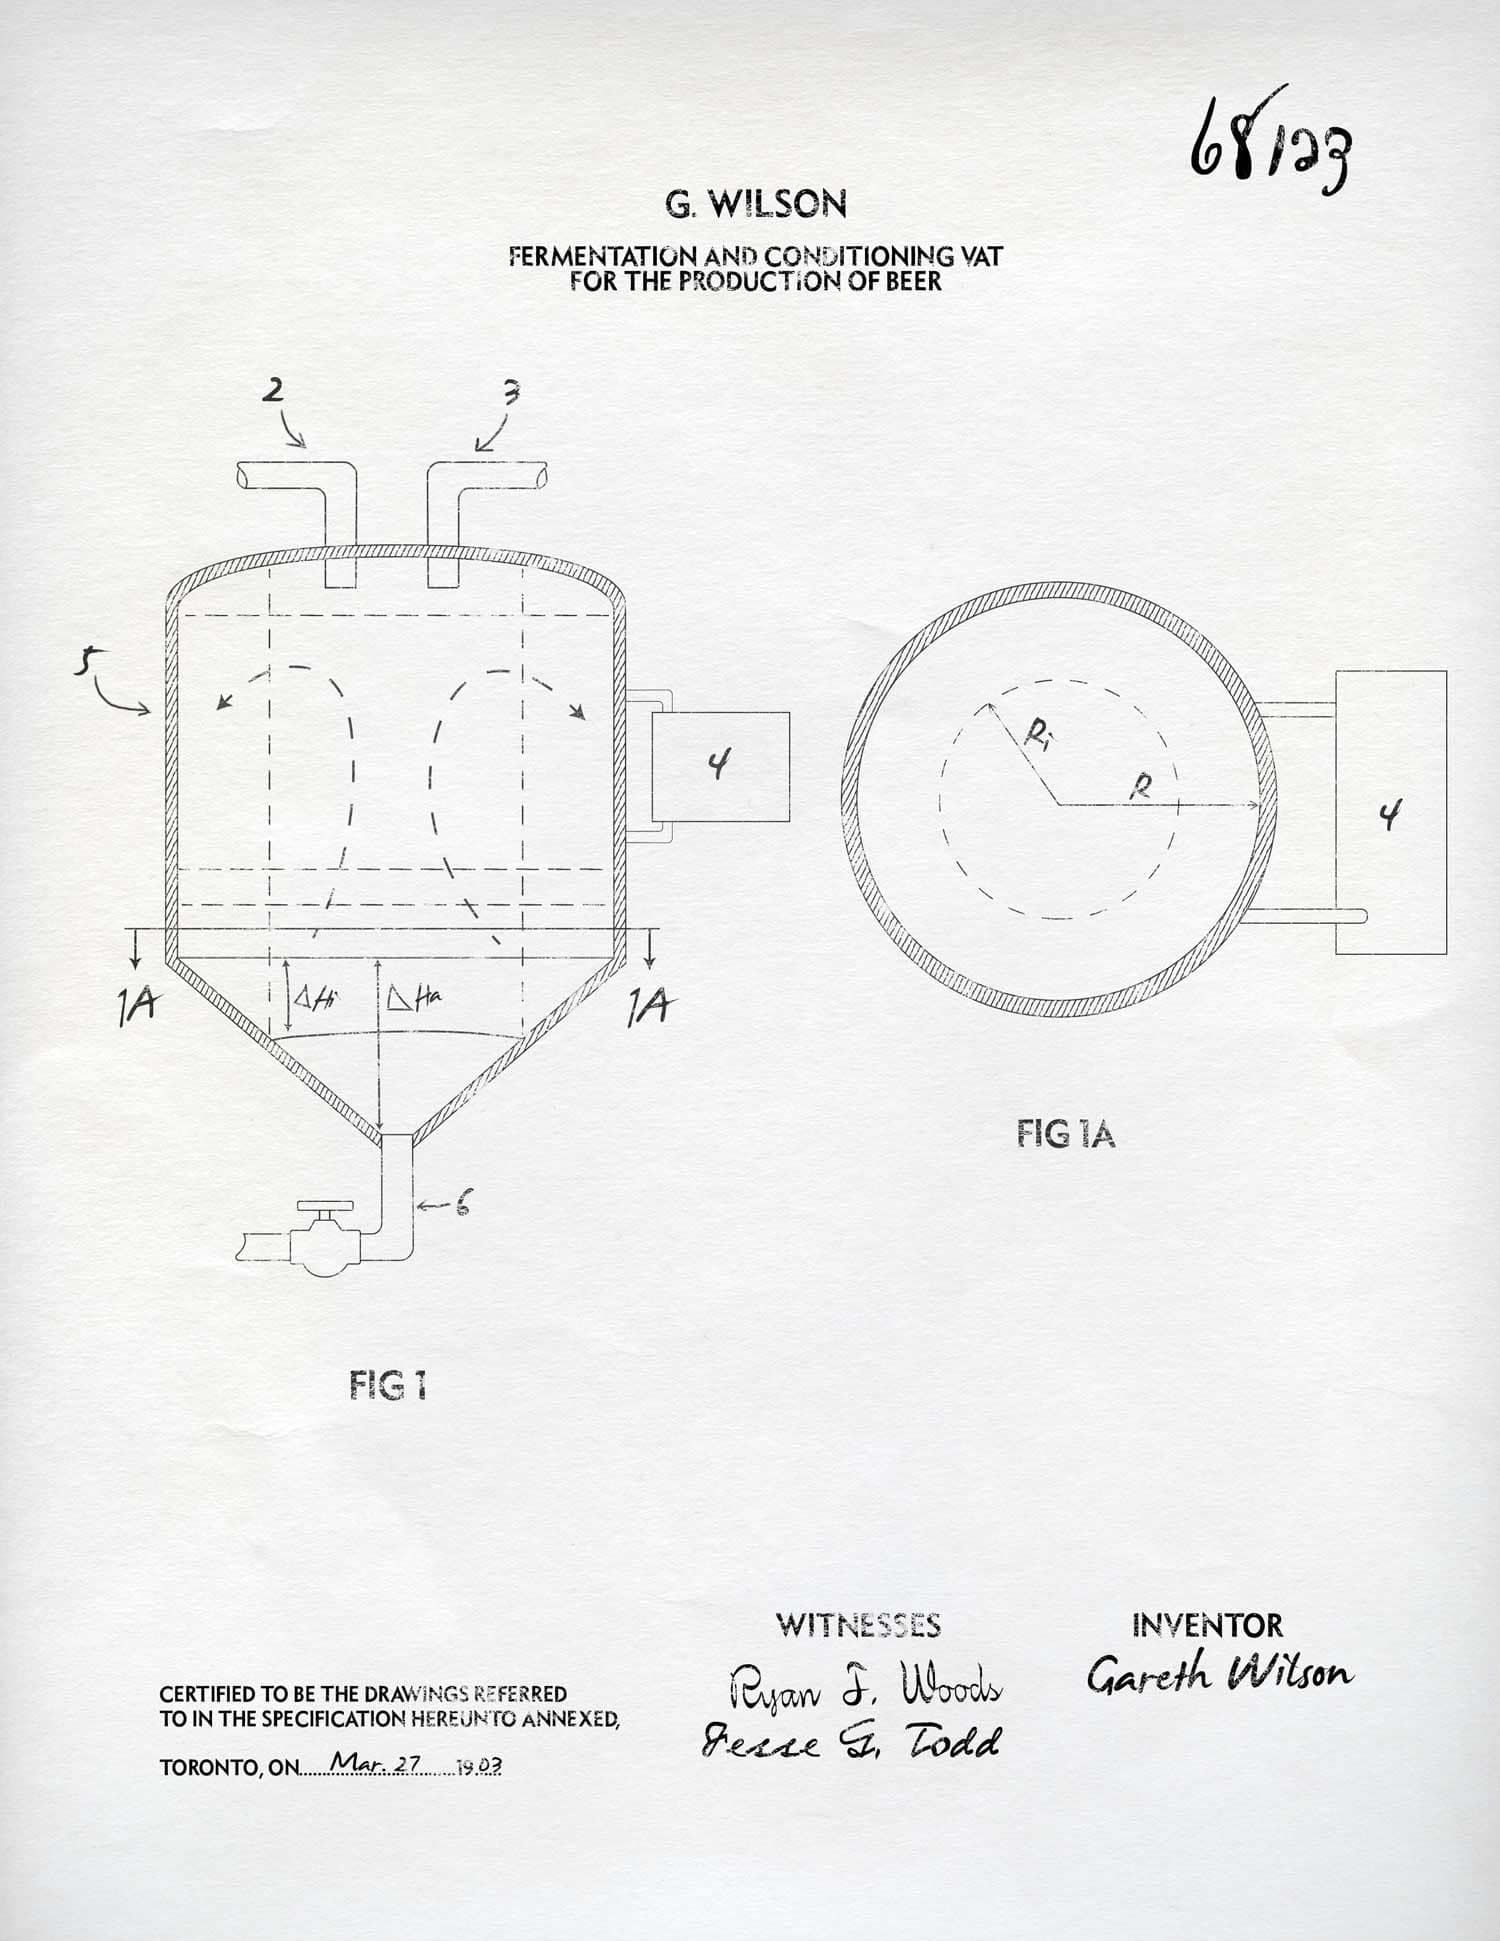 Gareth Wilson's successful patent for a beer vat that combines fermentation and conditioning.